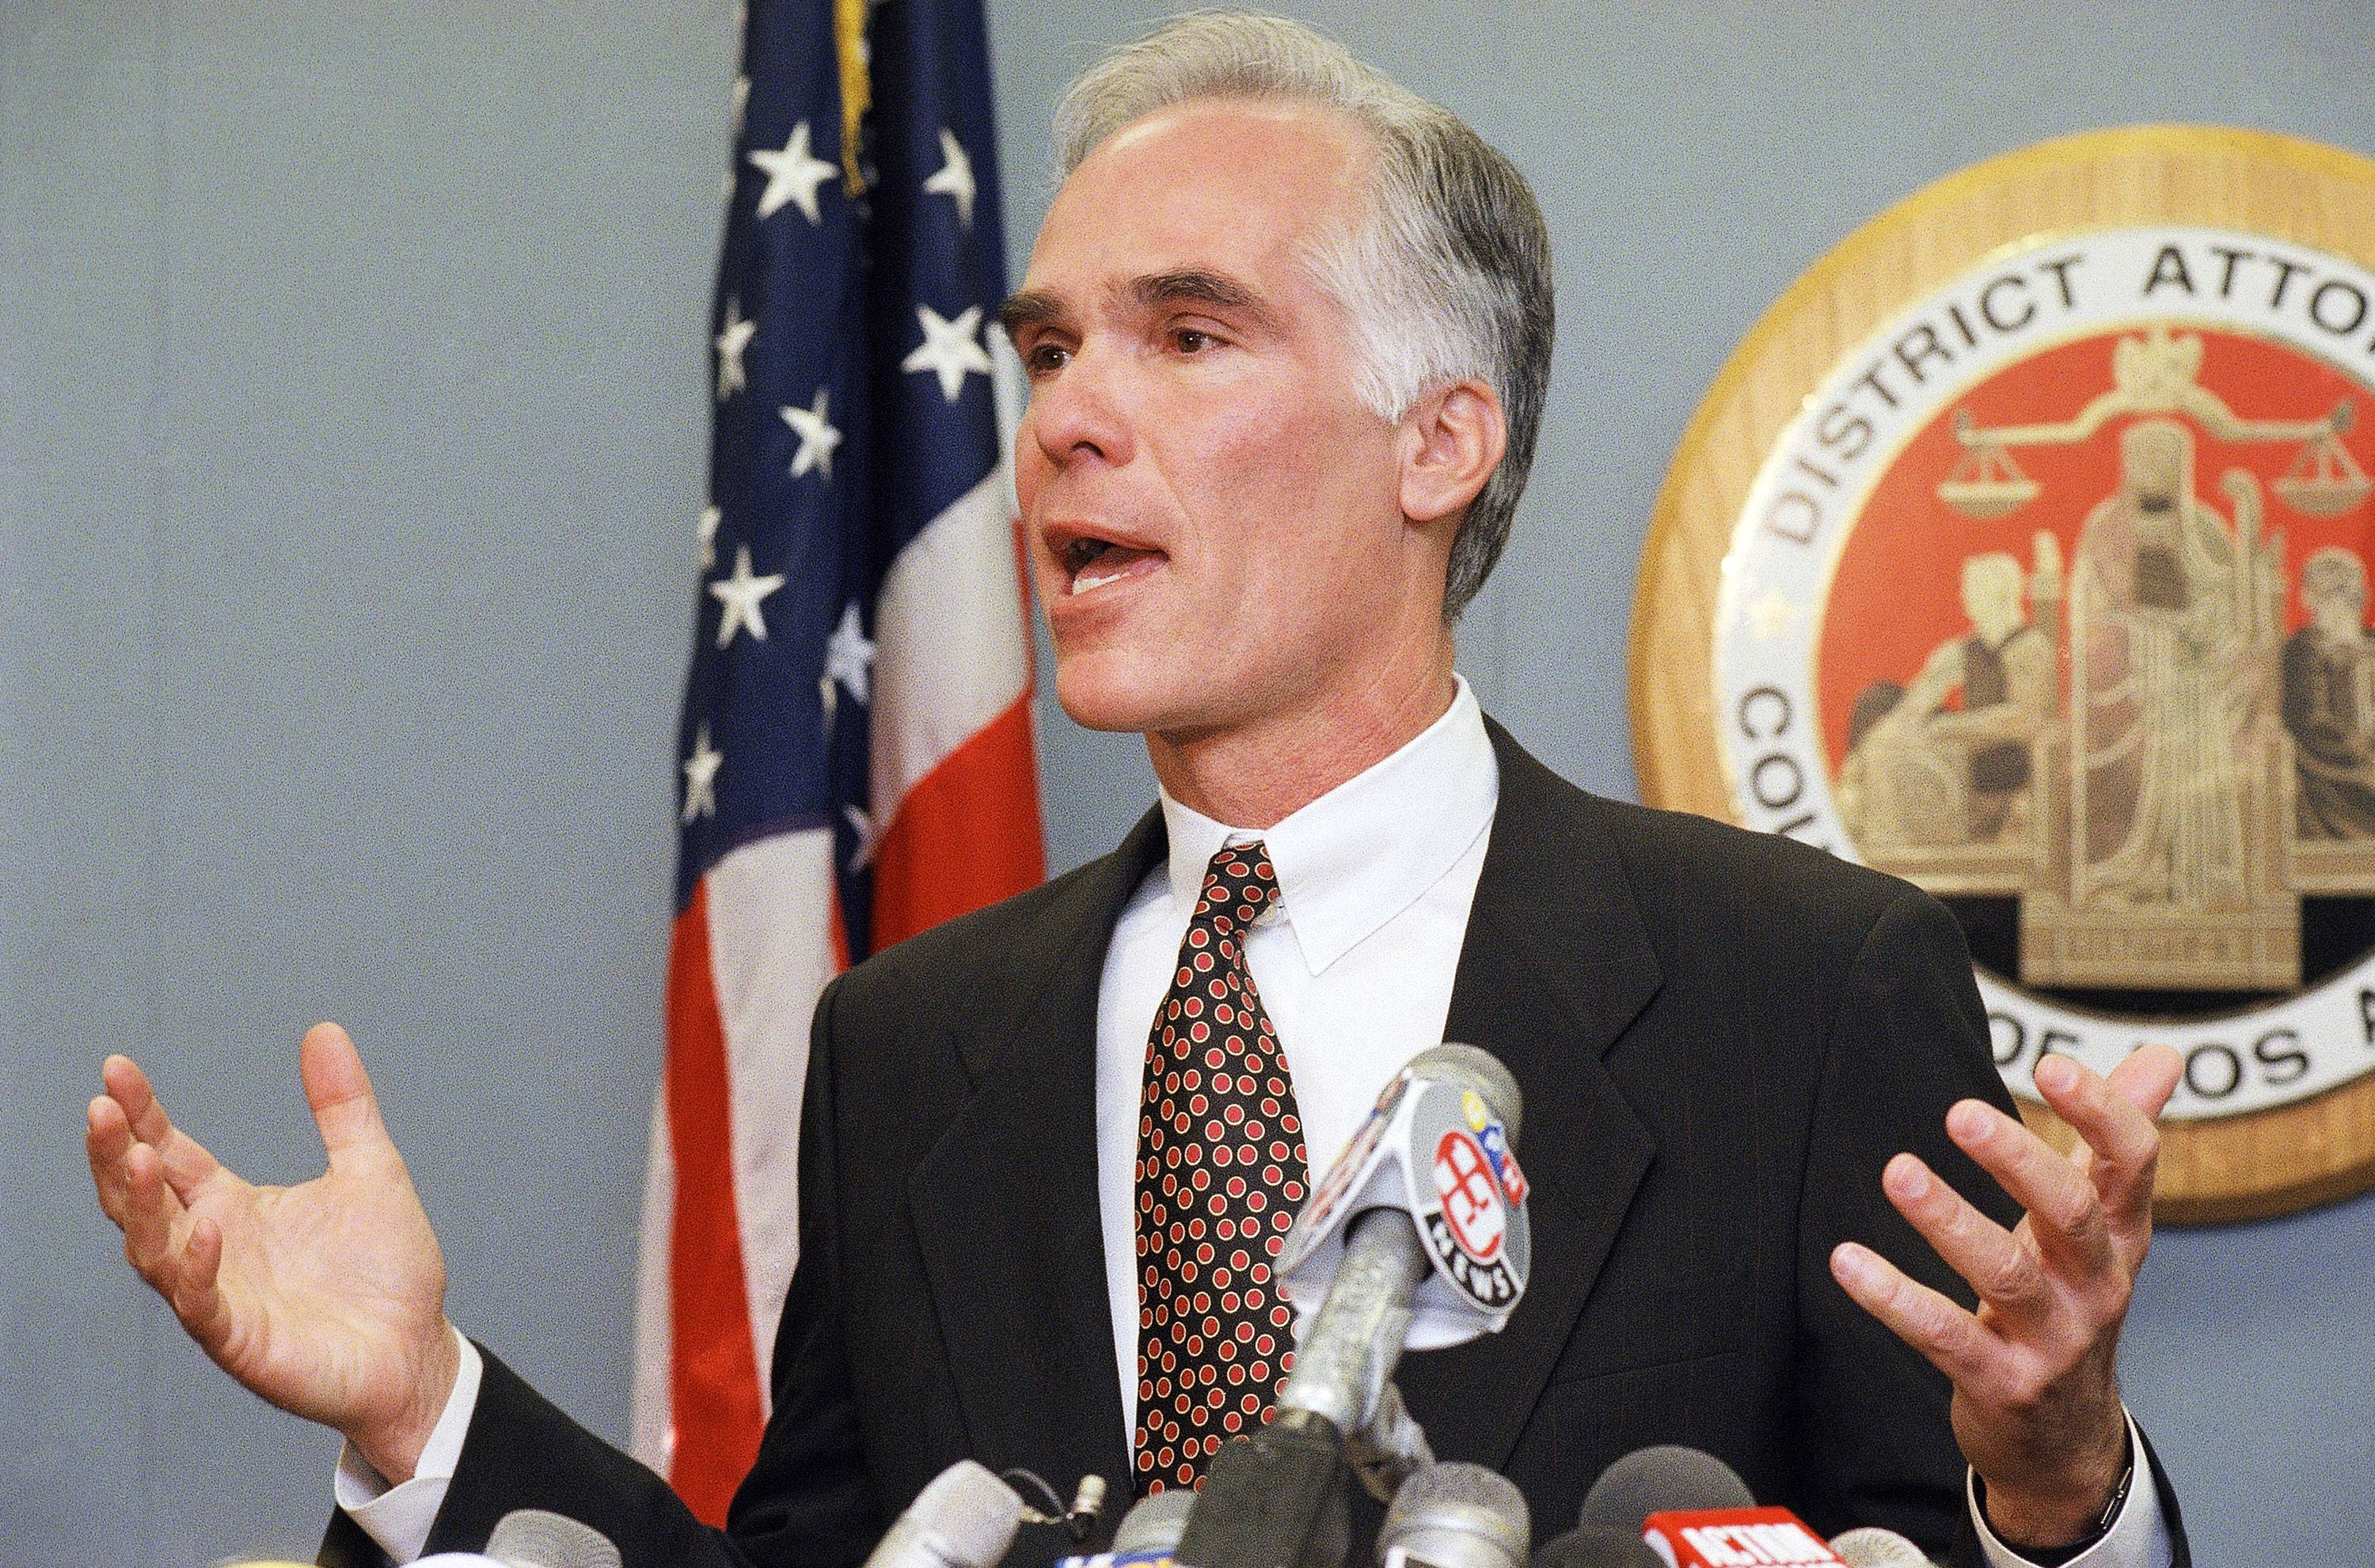 Los Angeles District Attorney Gil Garcetti was re-elected to another term in spite of criticism of his handling of the Simspon case. He later changed careers, focusing on his passion for photography and traveled the world taking pictures that were published in six books, which tried to raise awareness of social needs such as water wells in Africa.